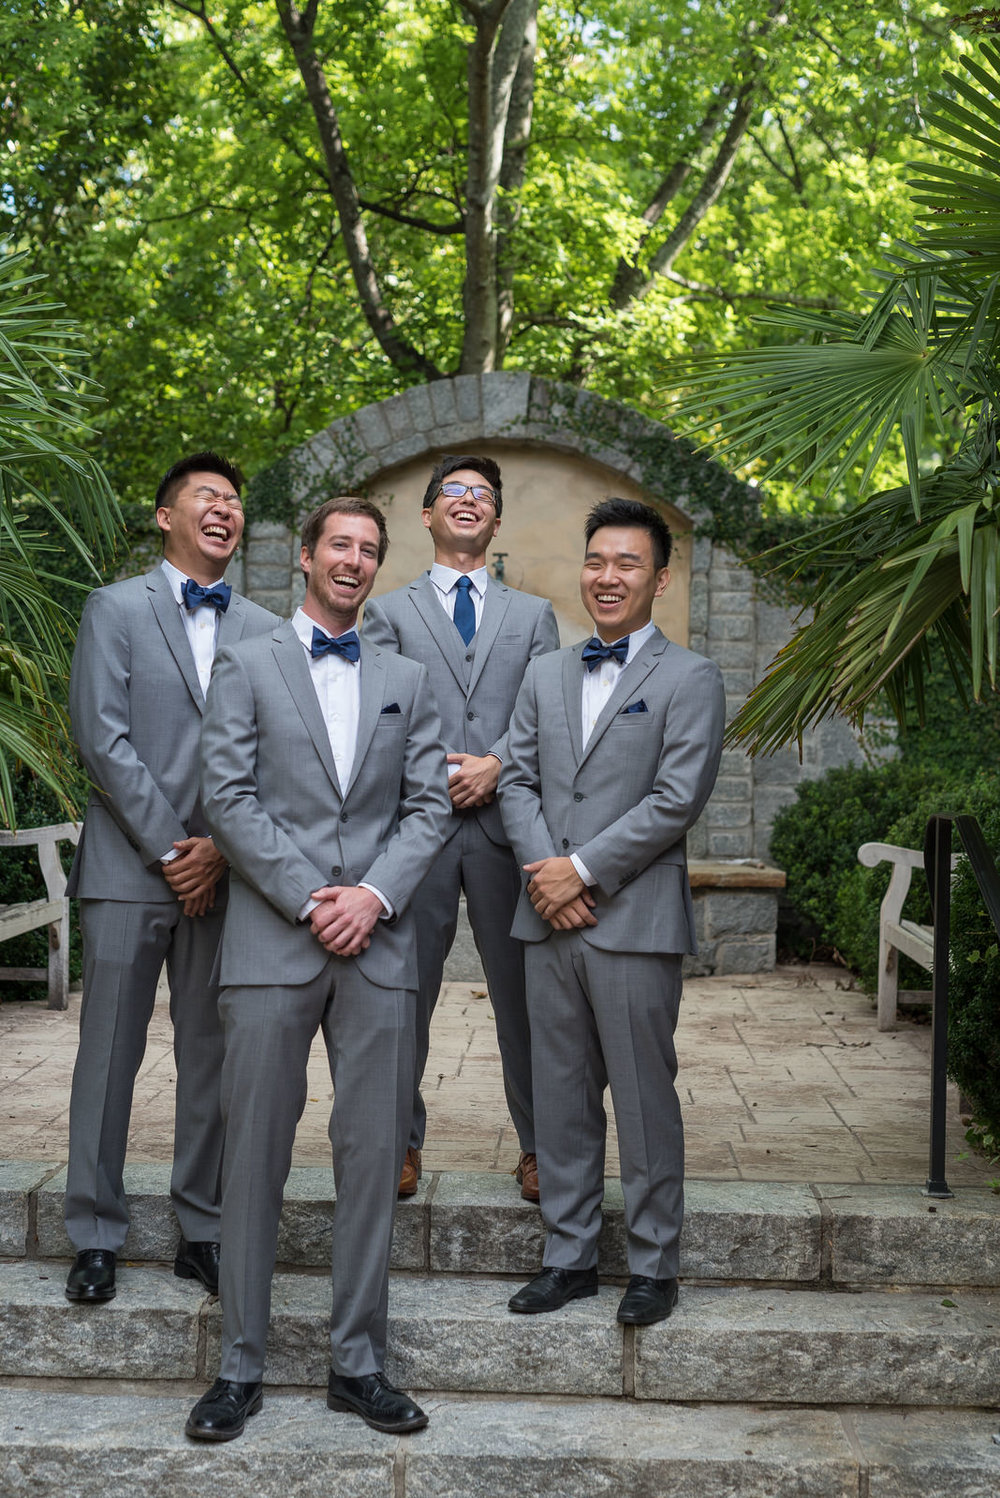 Groom & Groomsman share a laugh at Rock Spring Presbyterian Church, Atlanta Georgia